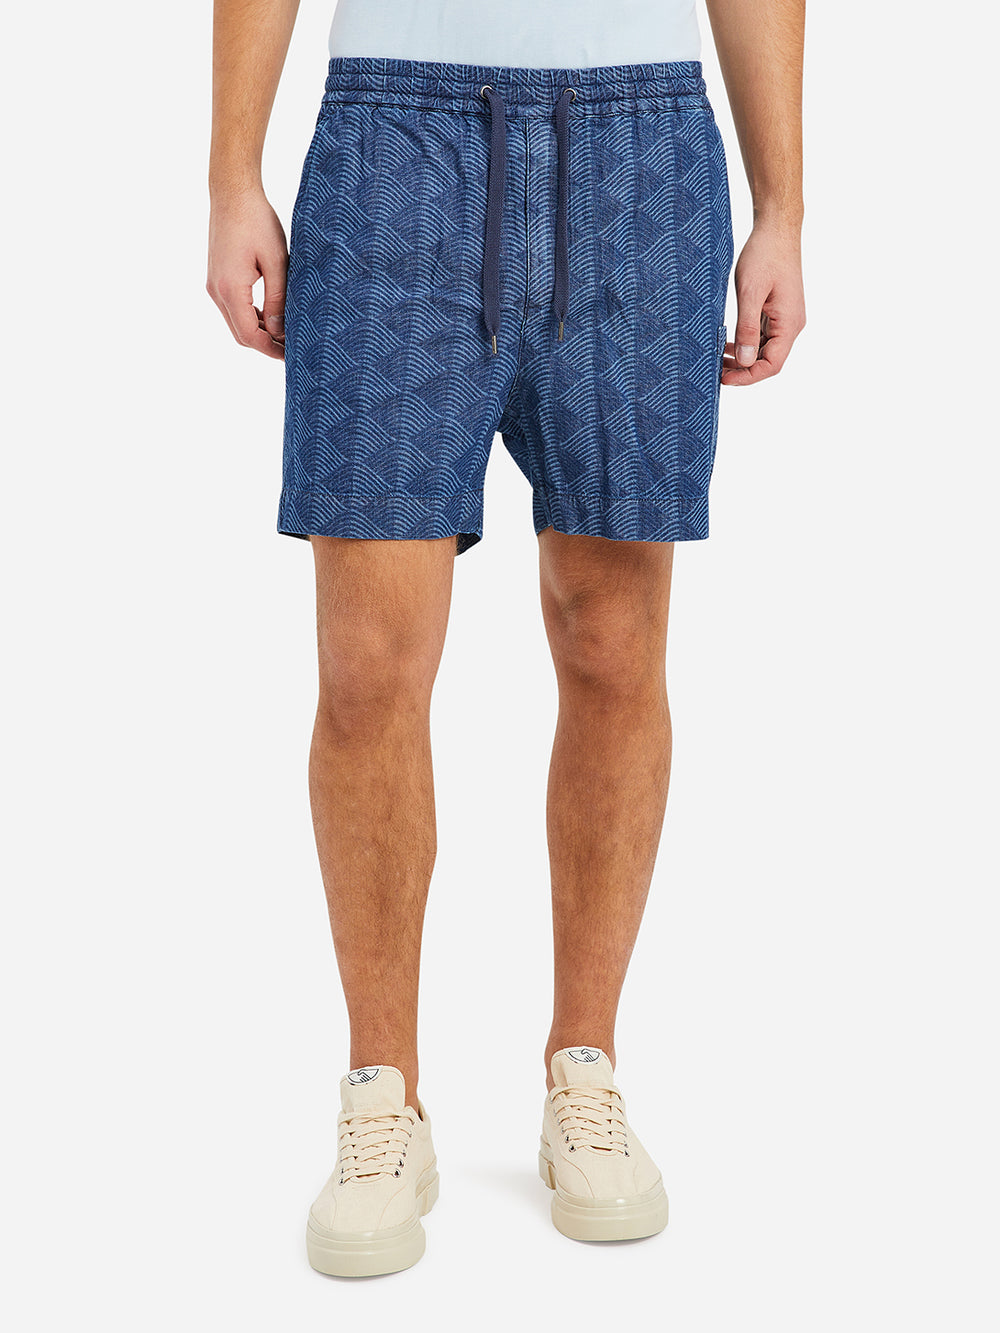 Indigo Indigo Pattern Marlo Short Men's cotton shorts ONS Clothing